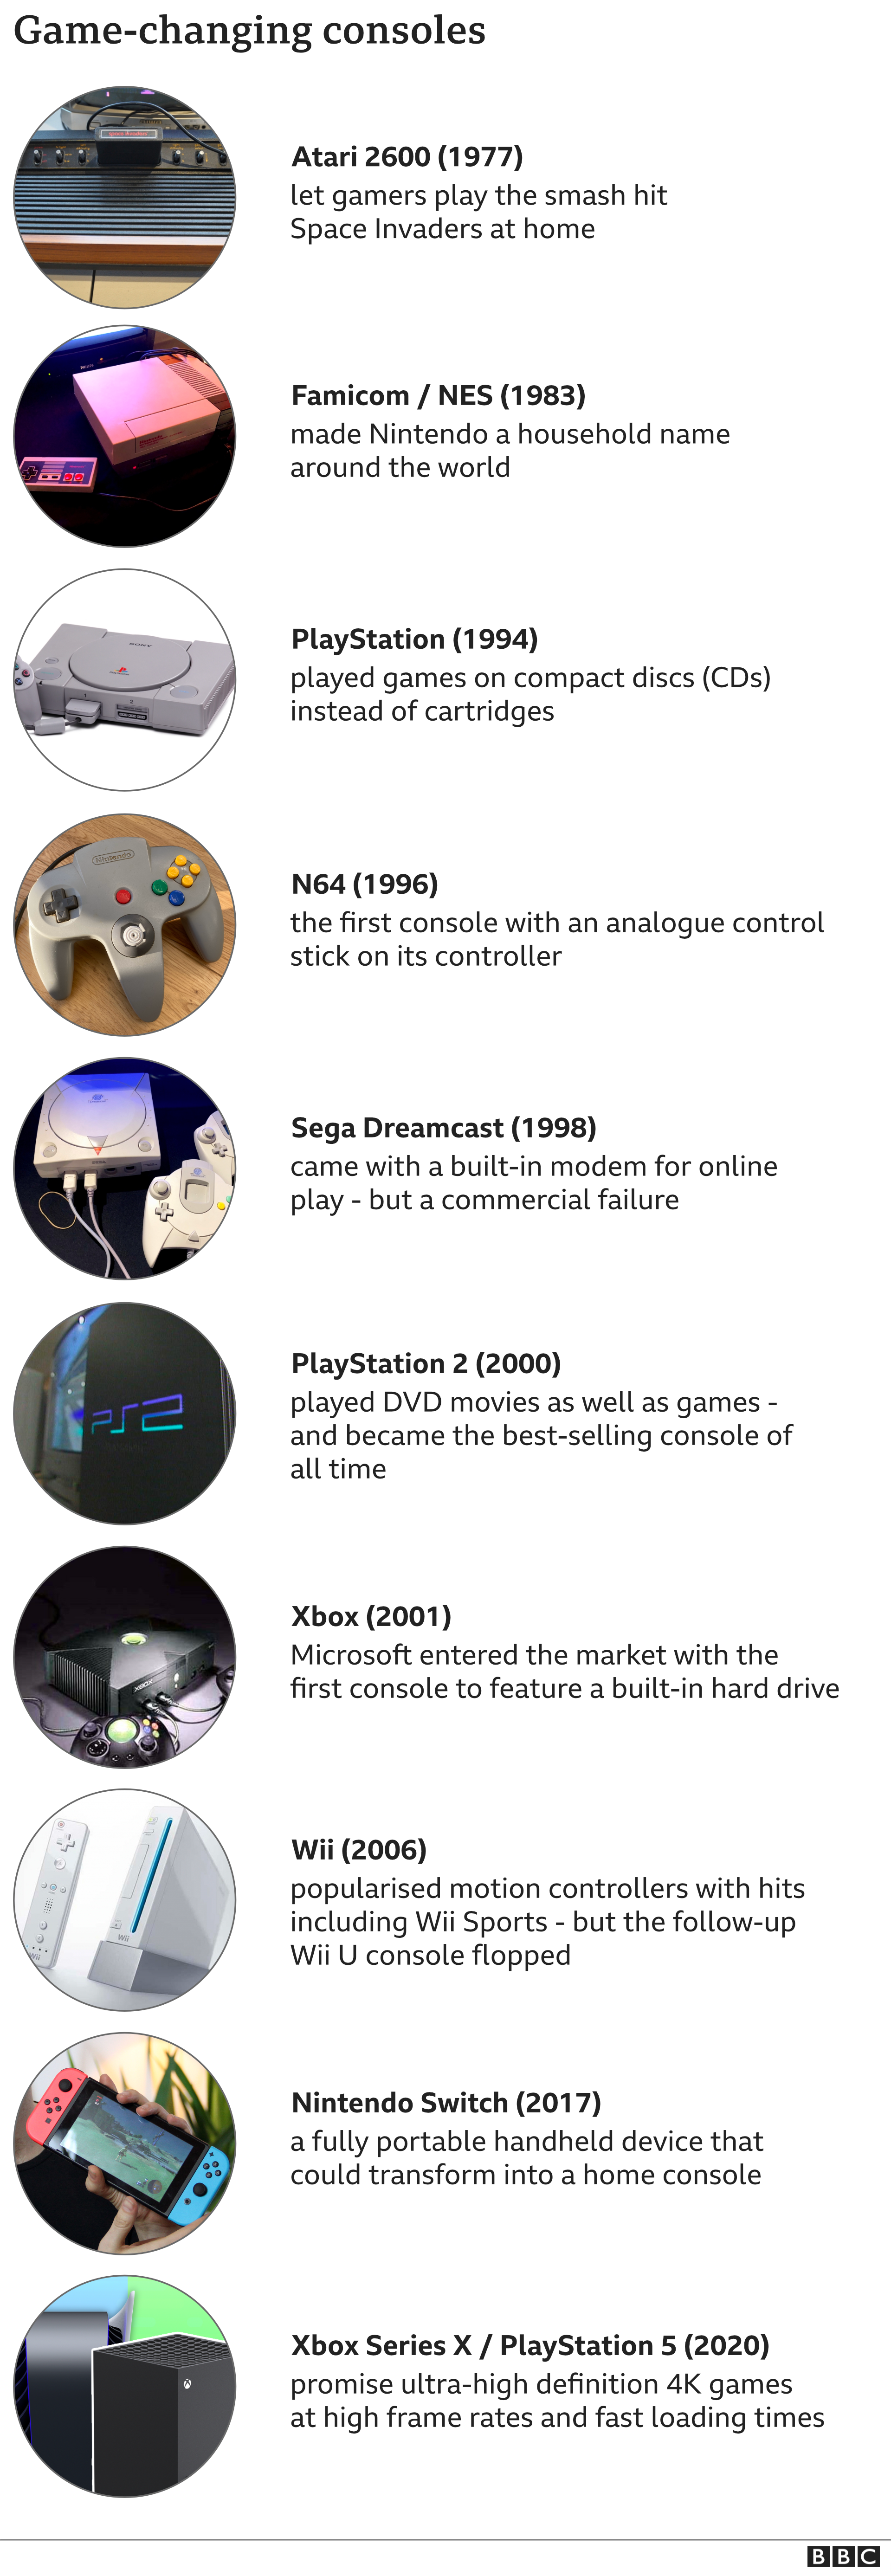 A list of game-changing consoles - showing the Atari 2600 from 1977 up to the PS5 and Xbox Series X